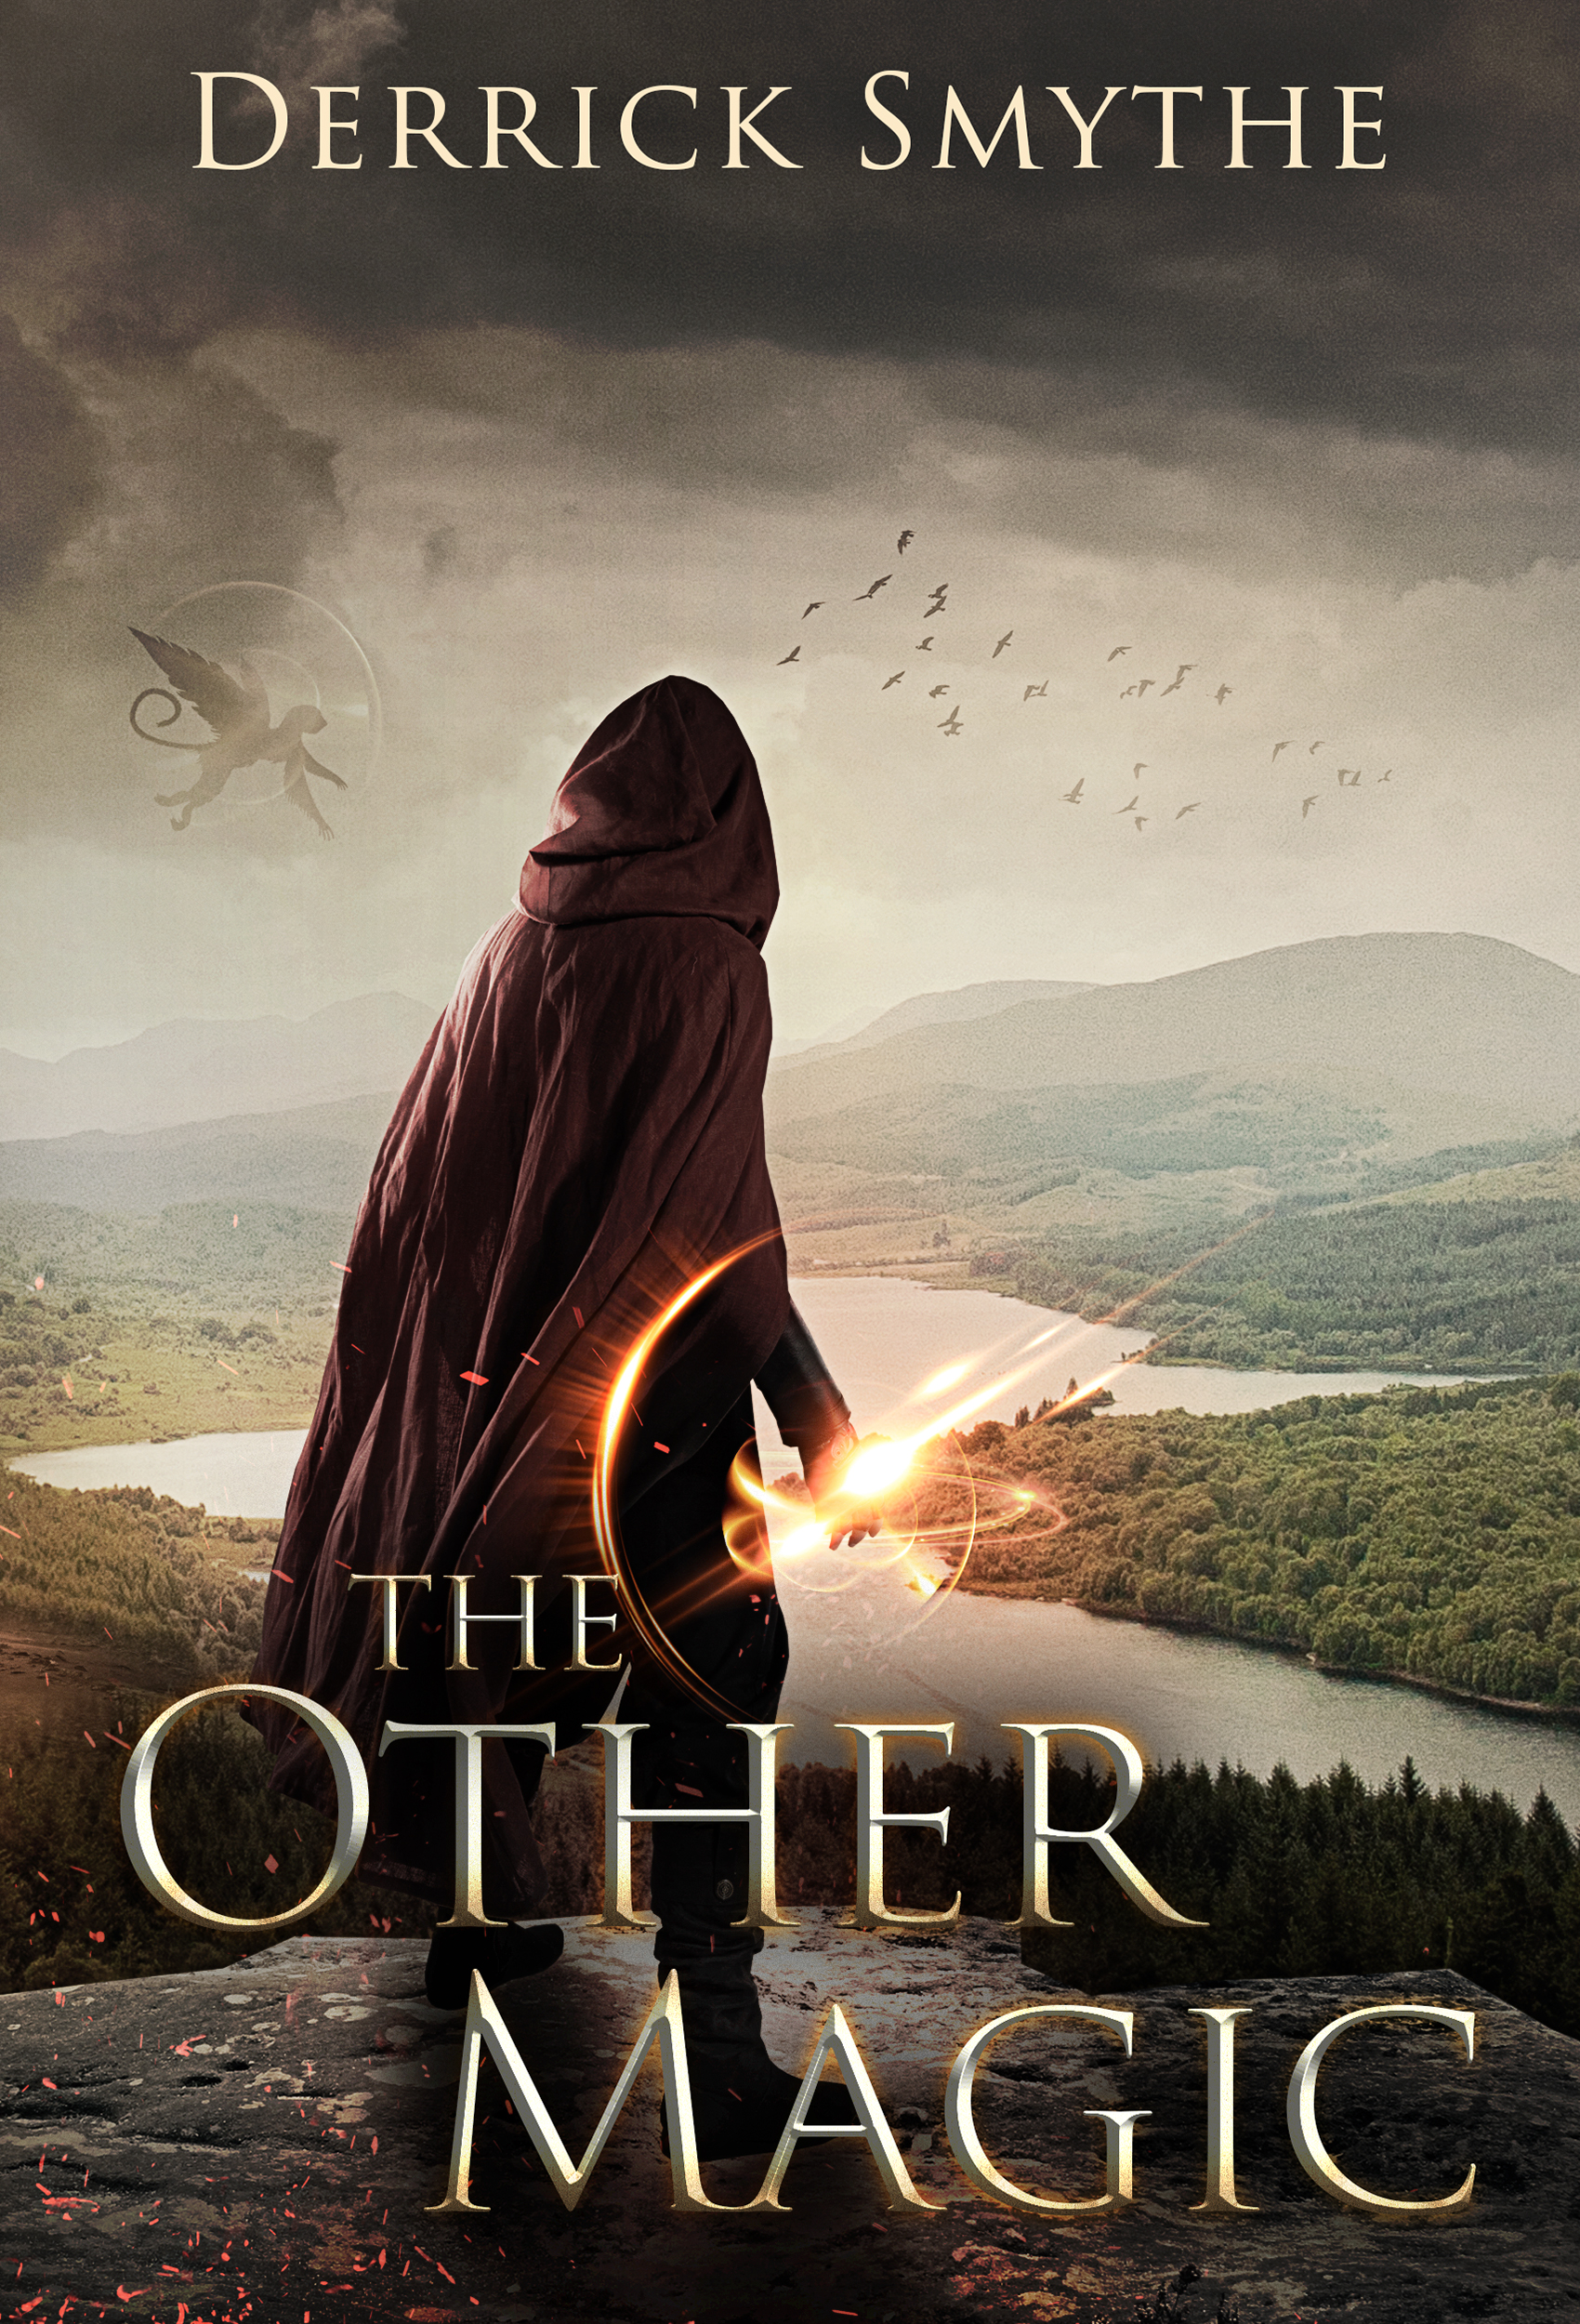 The Other Magic – A Reverse Interview into an #AwardWinning #Fantasy